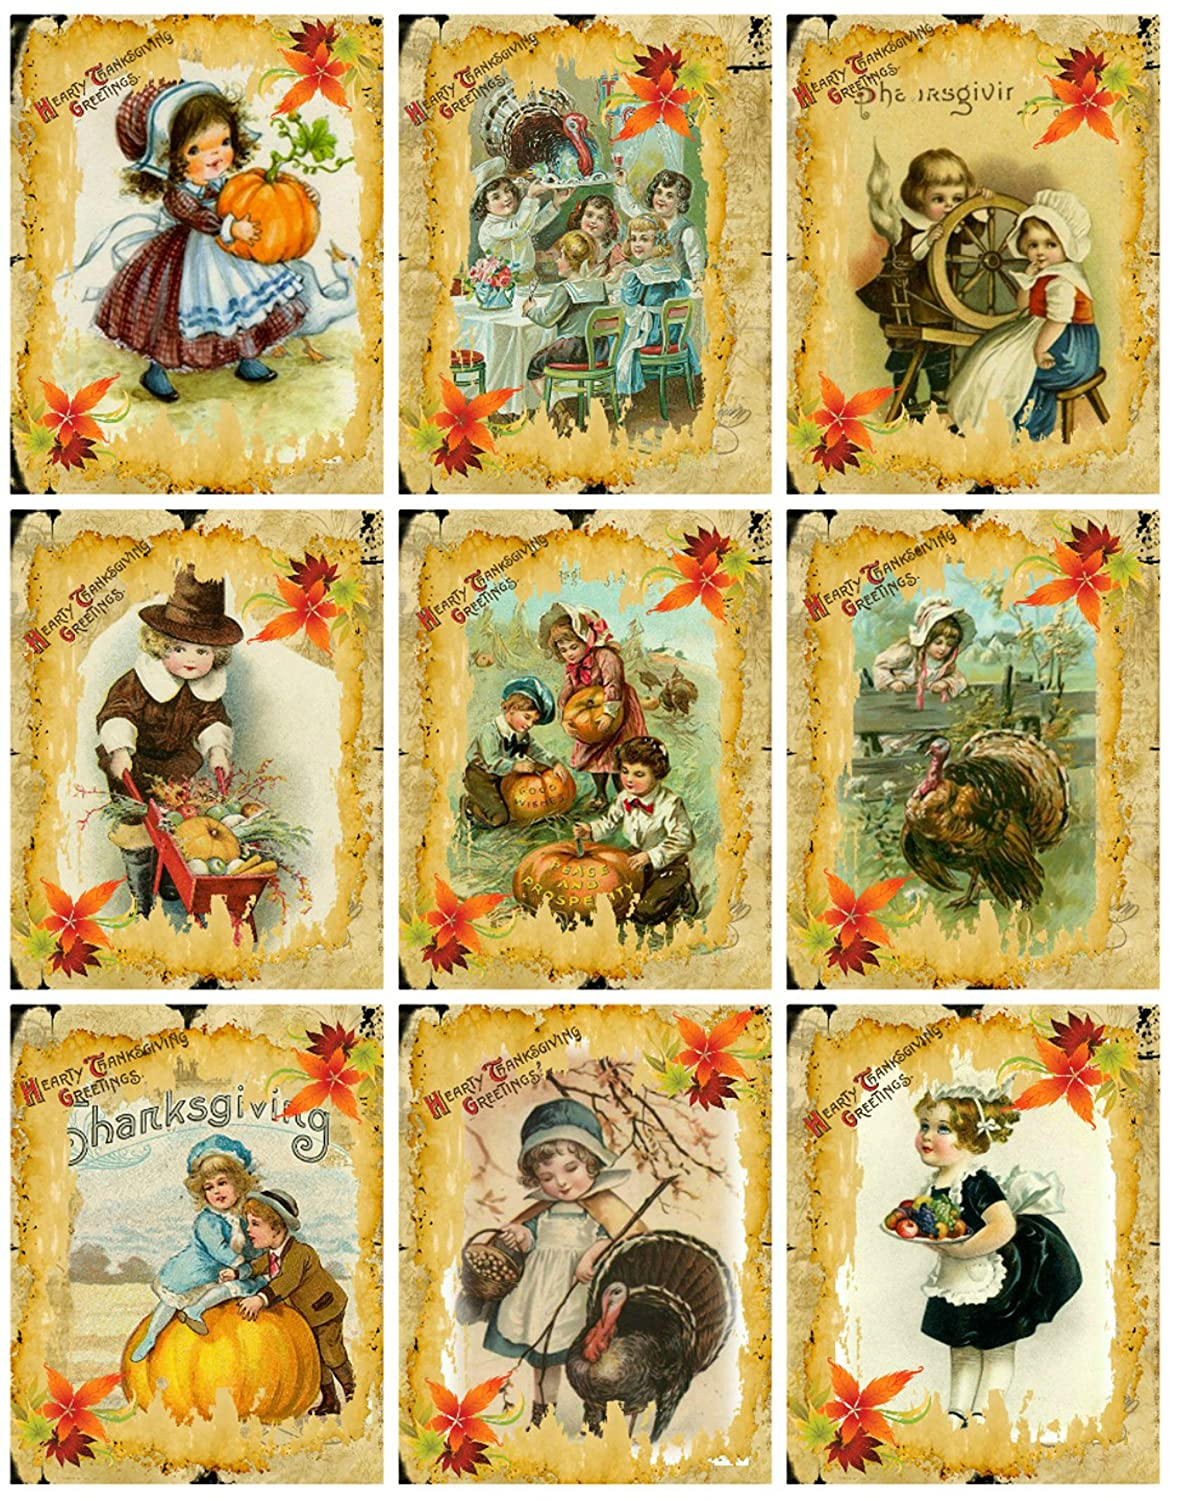 Assorted Vintage Thanksgiving Cards, Tags, ATC Collage Sheet Paper Moon Media